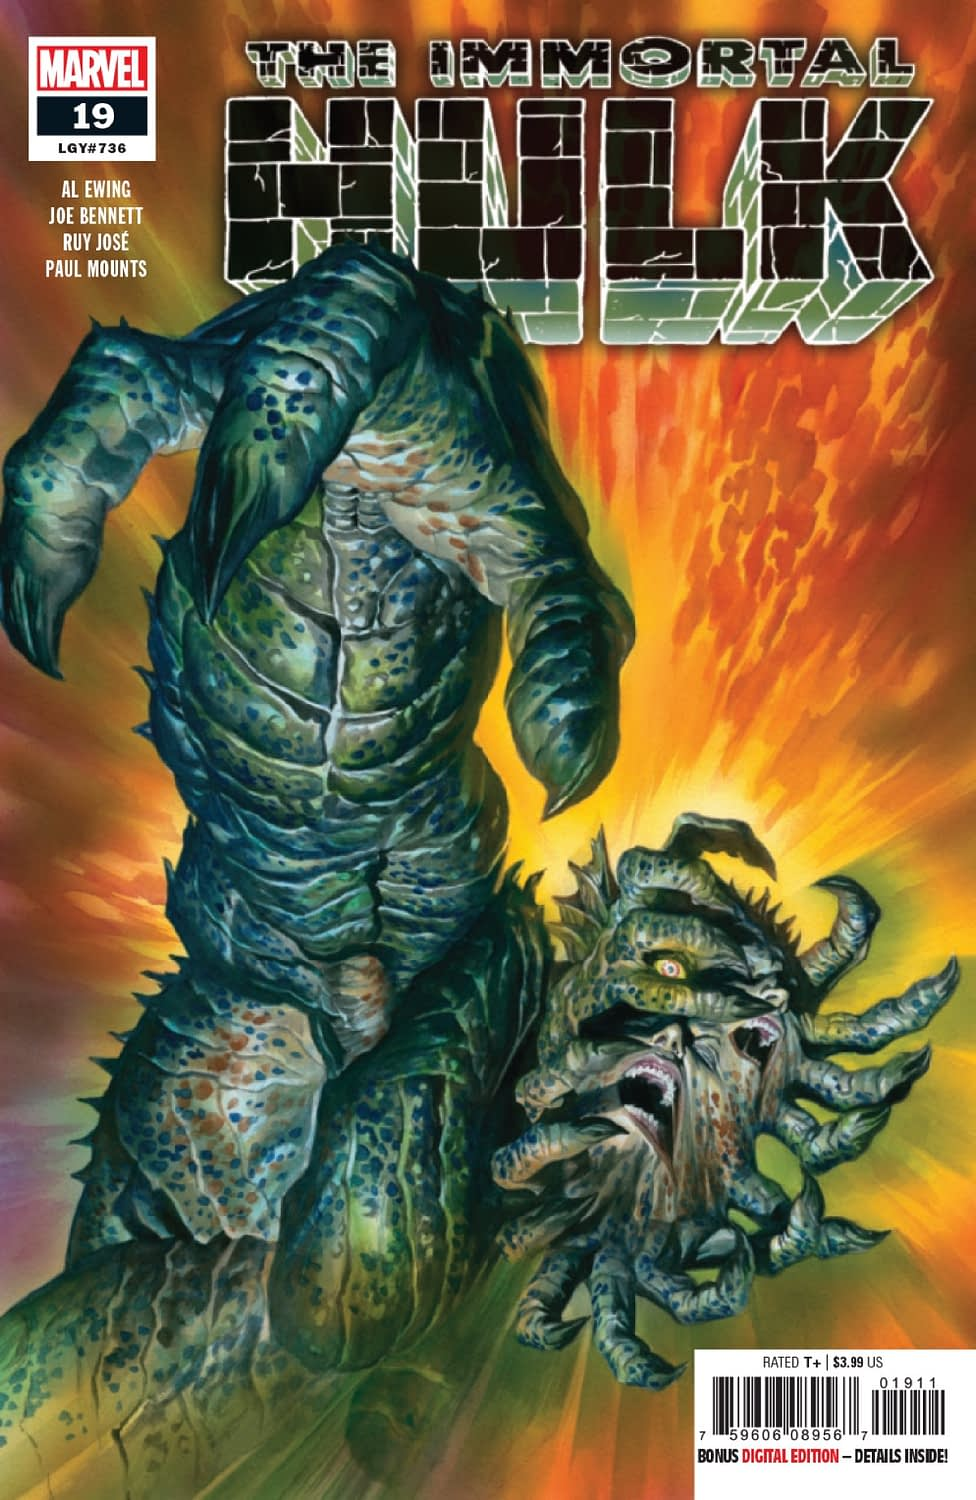 Is This How You Outsell Batman? A Vomitous Immortal Hulk #19 Preview